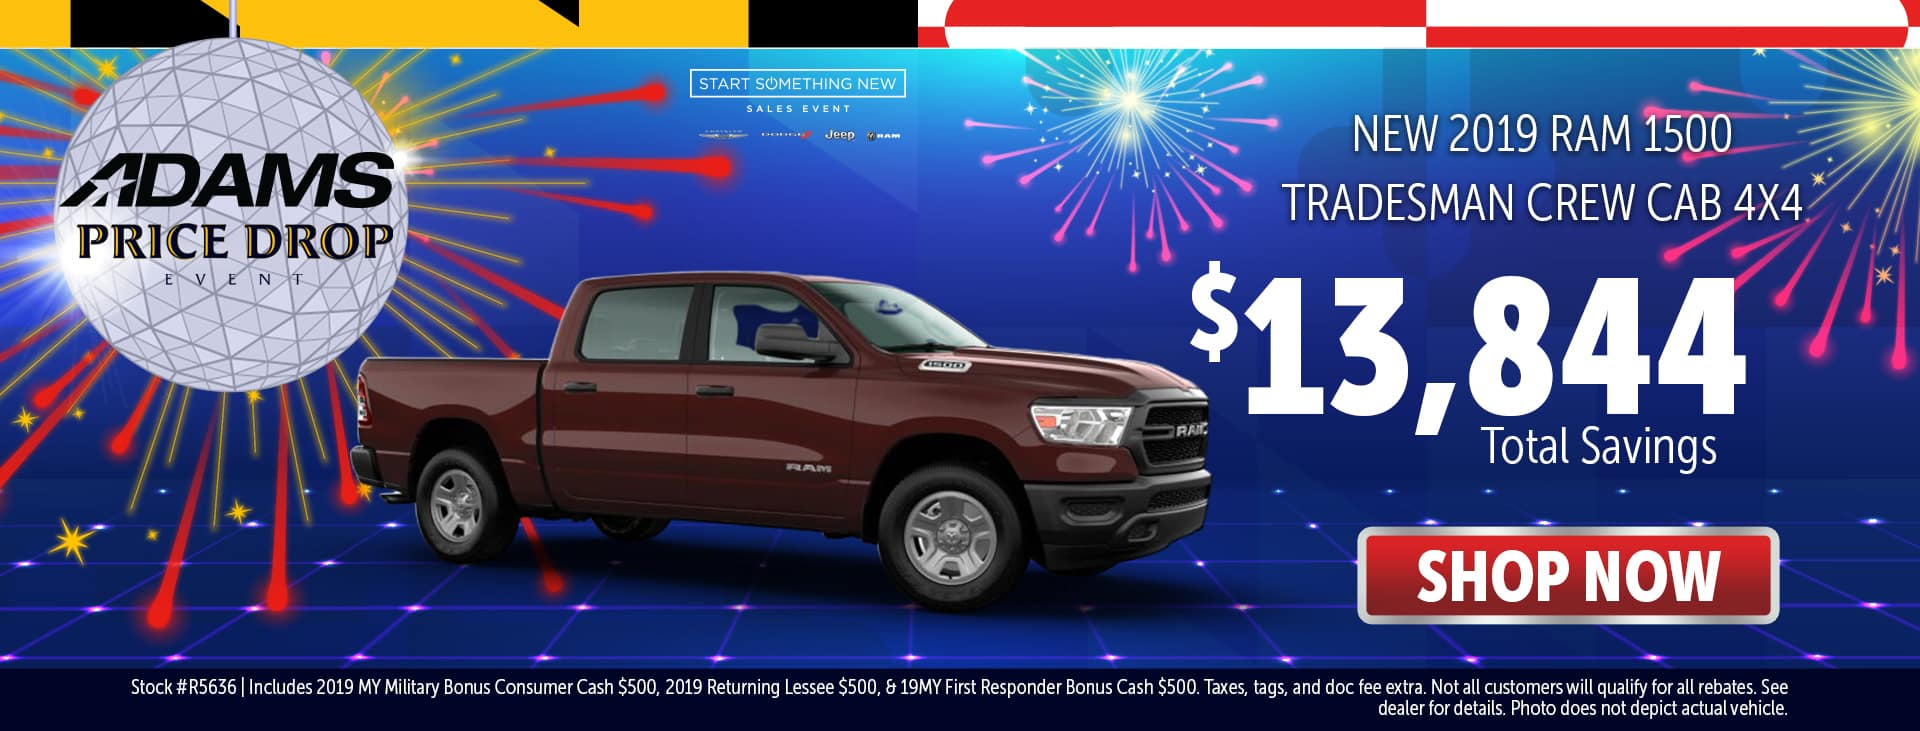 Over $13,000 Off MSRP on a new Ram 1500